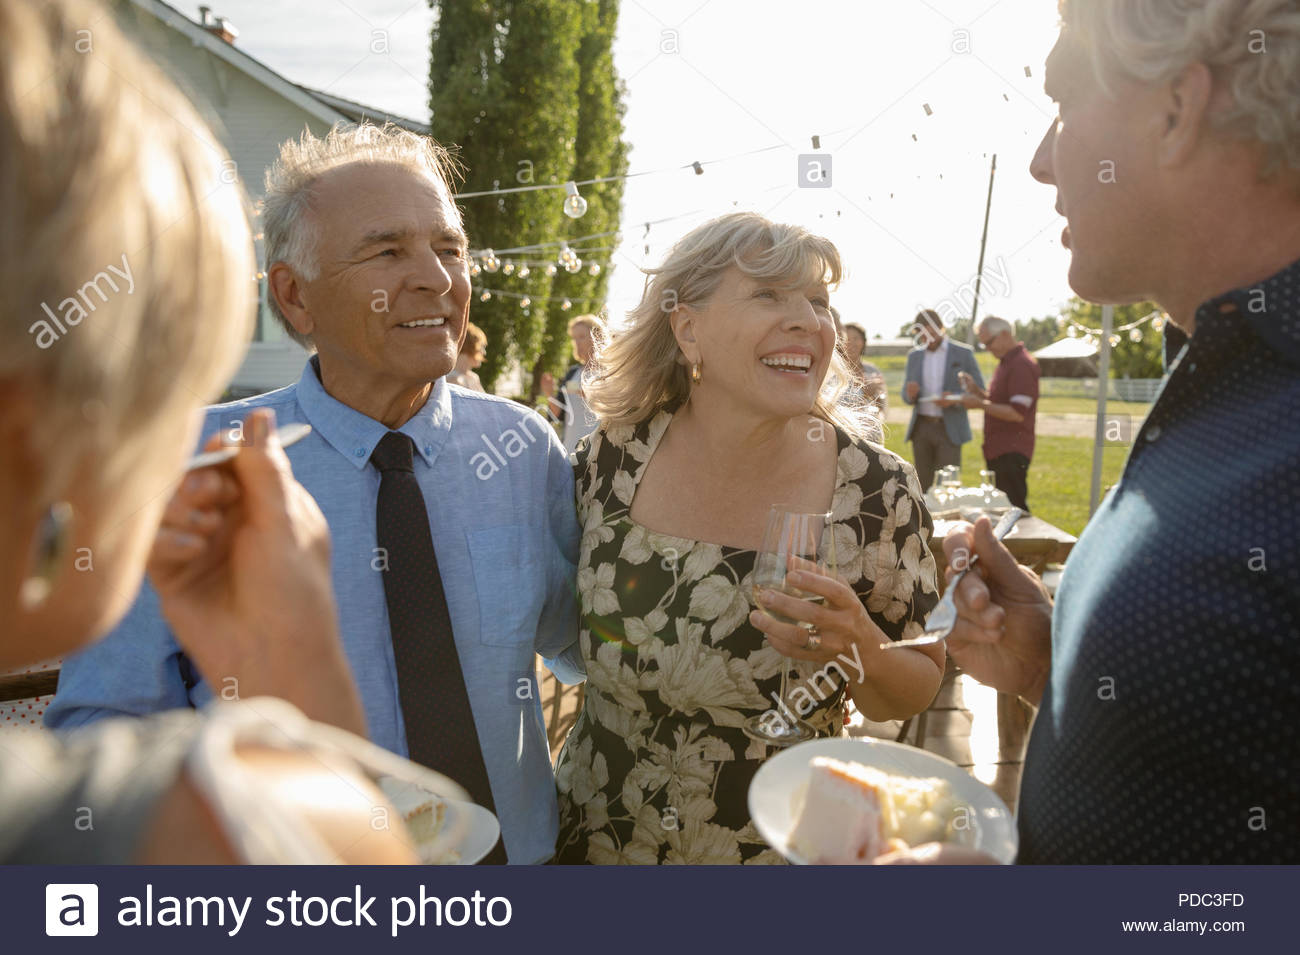 Friends celebrating, eating cake at garden party - Stock Image